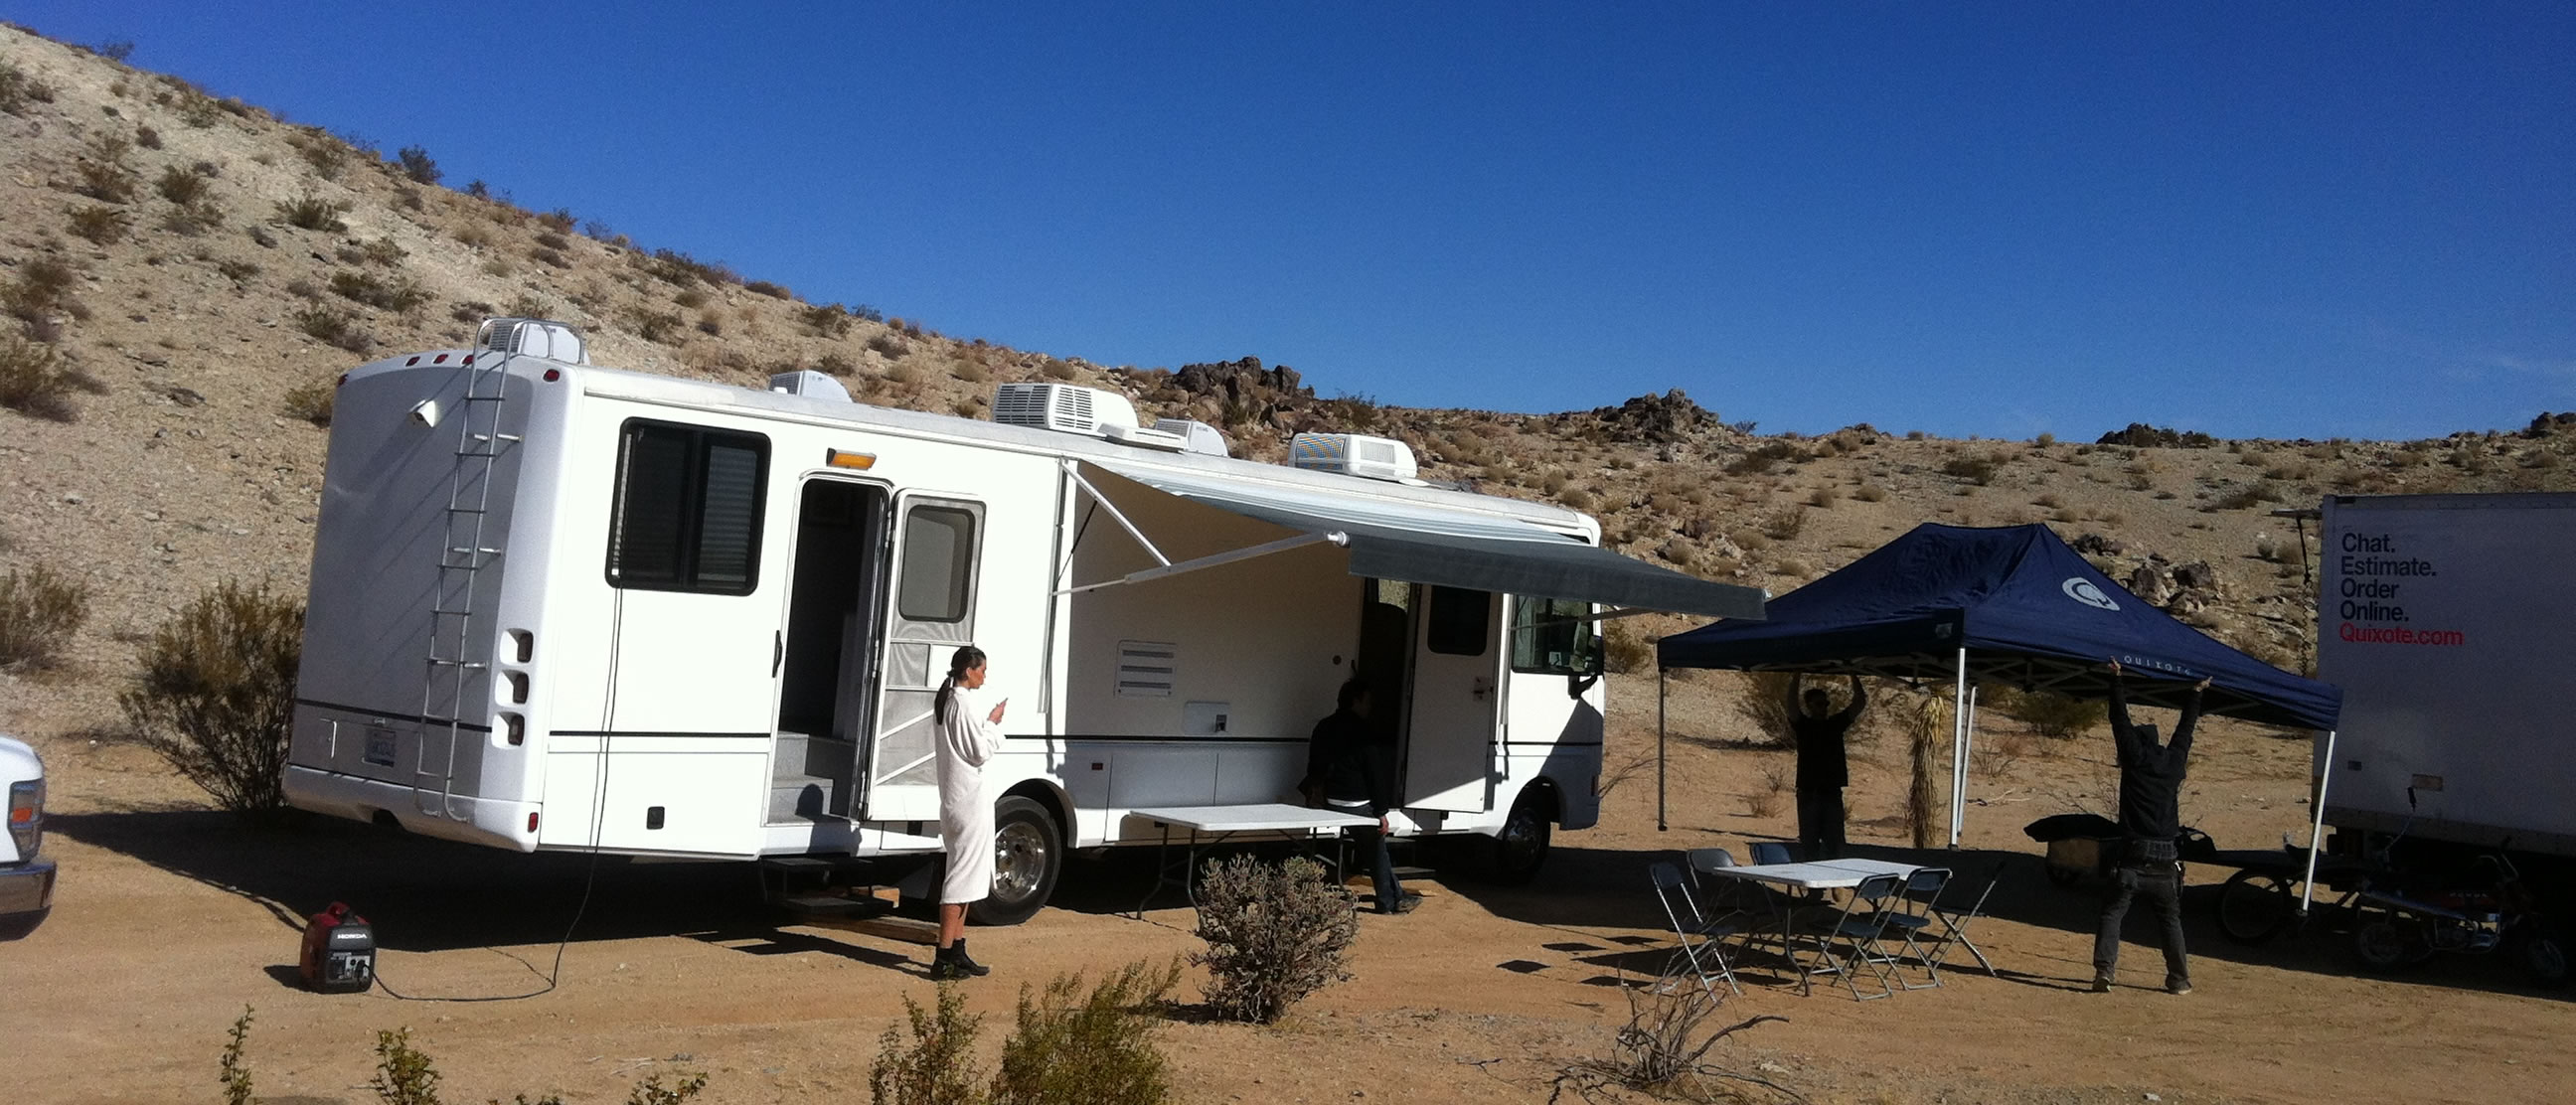 Moho Joe's RV Rentals Palm Springs